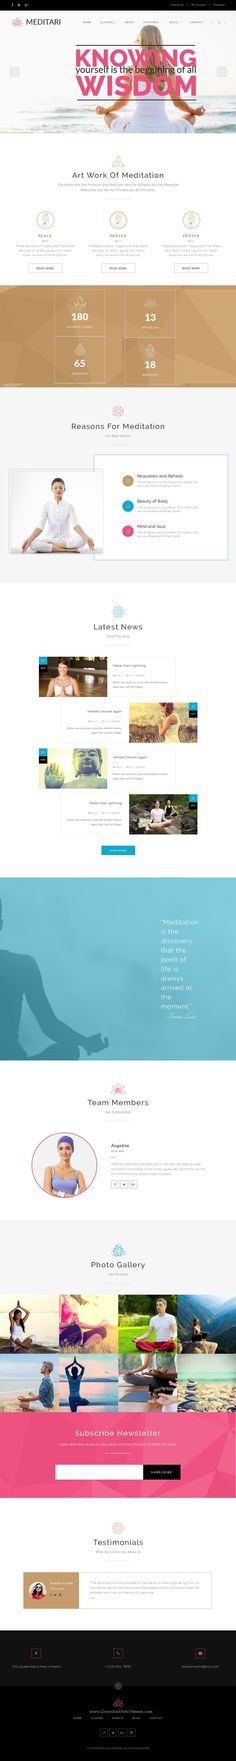 10 Fitness and Sports Website Templates - Free From Wix Sports - fitness templates free